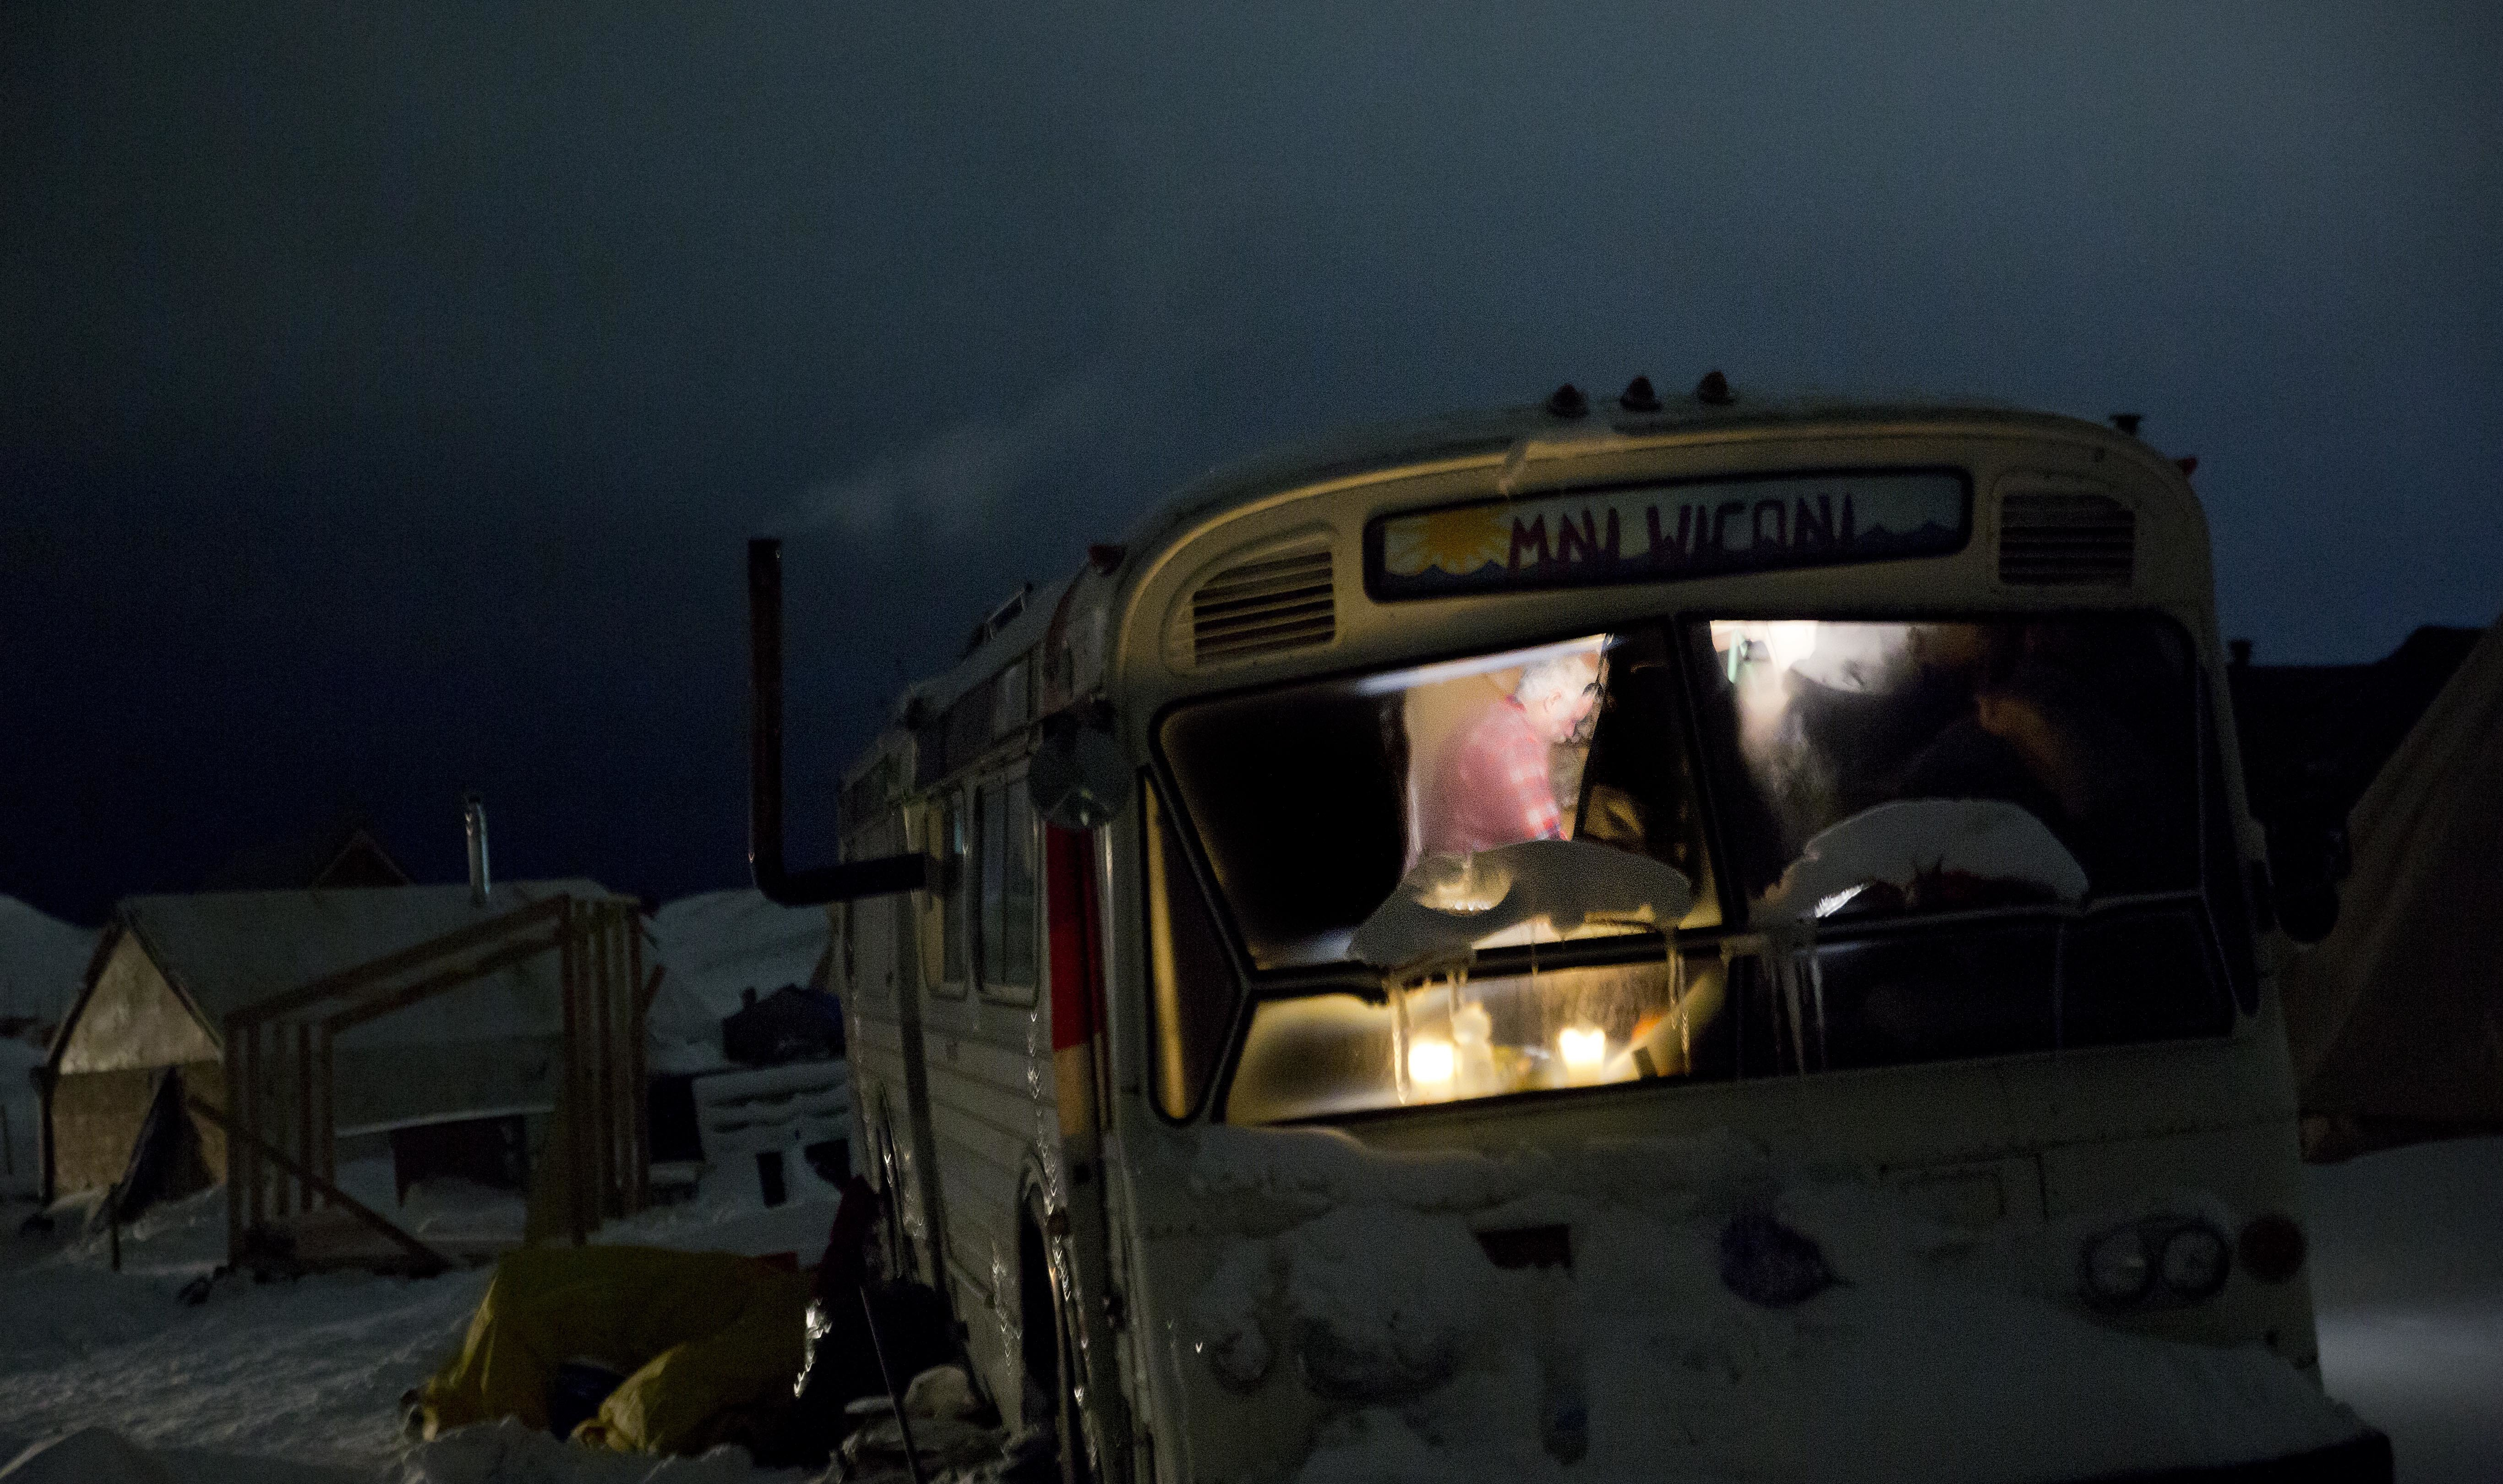 A bus has become a camper at the Oceti Sakowin camp, where people have gathered to protest the Dakota Access pipeline near Cannon Ball, N.D., Nov. 30, 2016. The camp covers a half square mile, with living quarters that include old school buses, fancy...